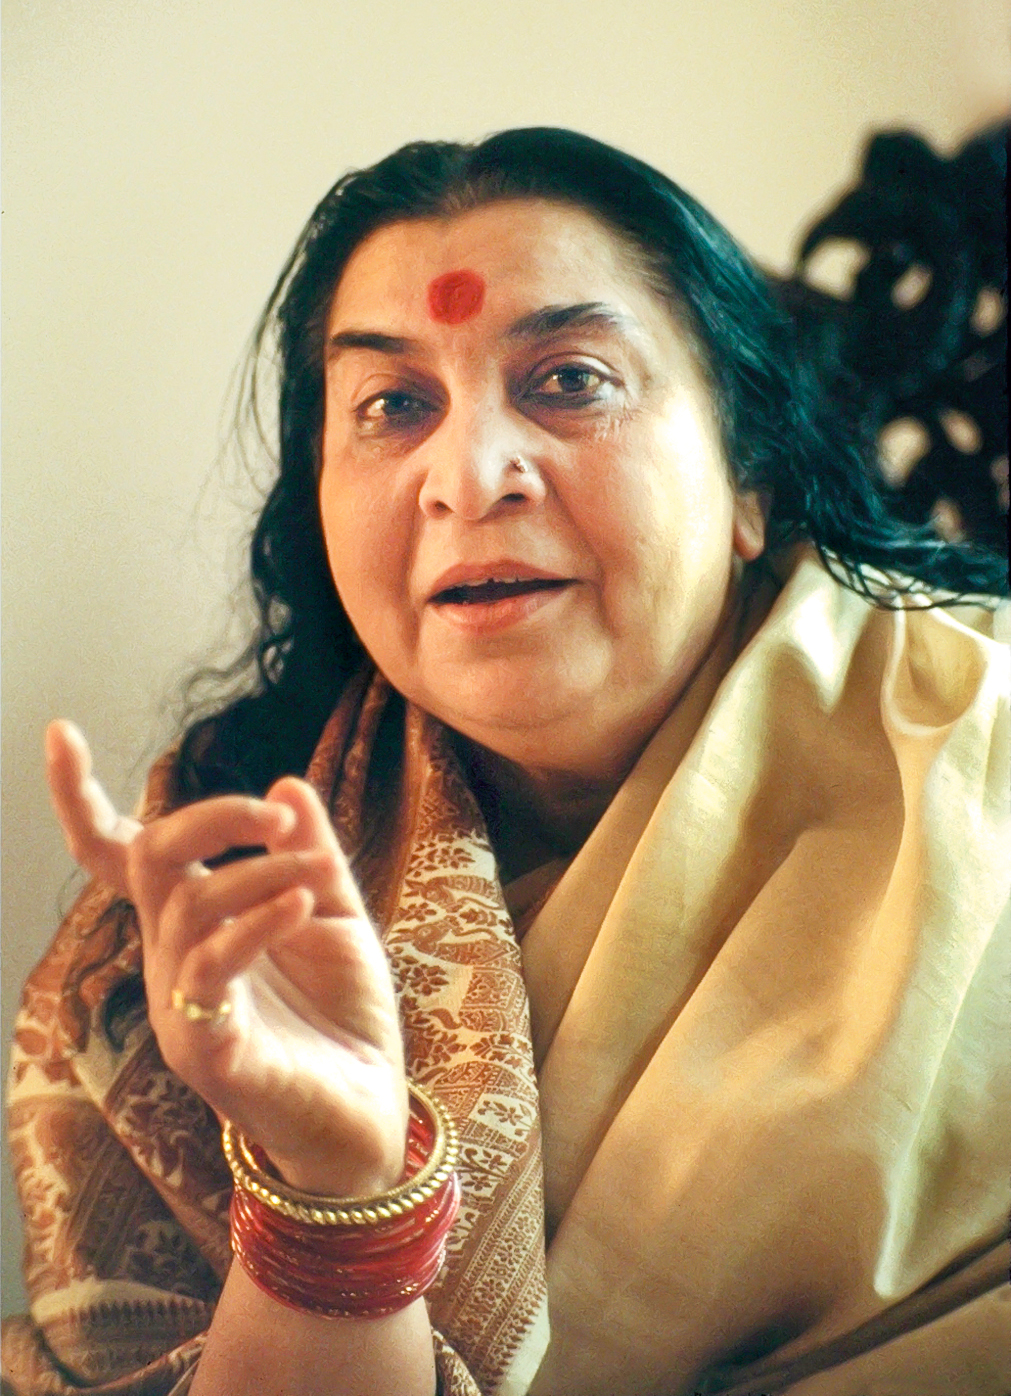 Shri Mataji in Lane Cove, Sydney 1983